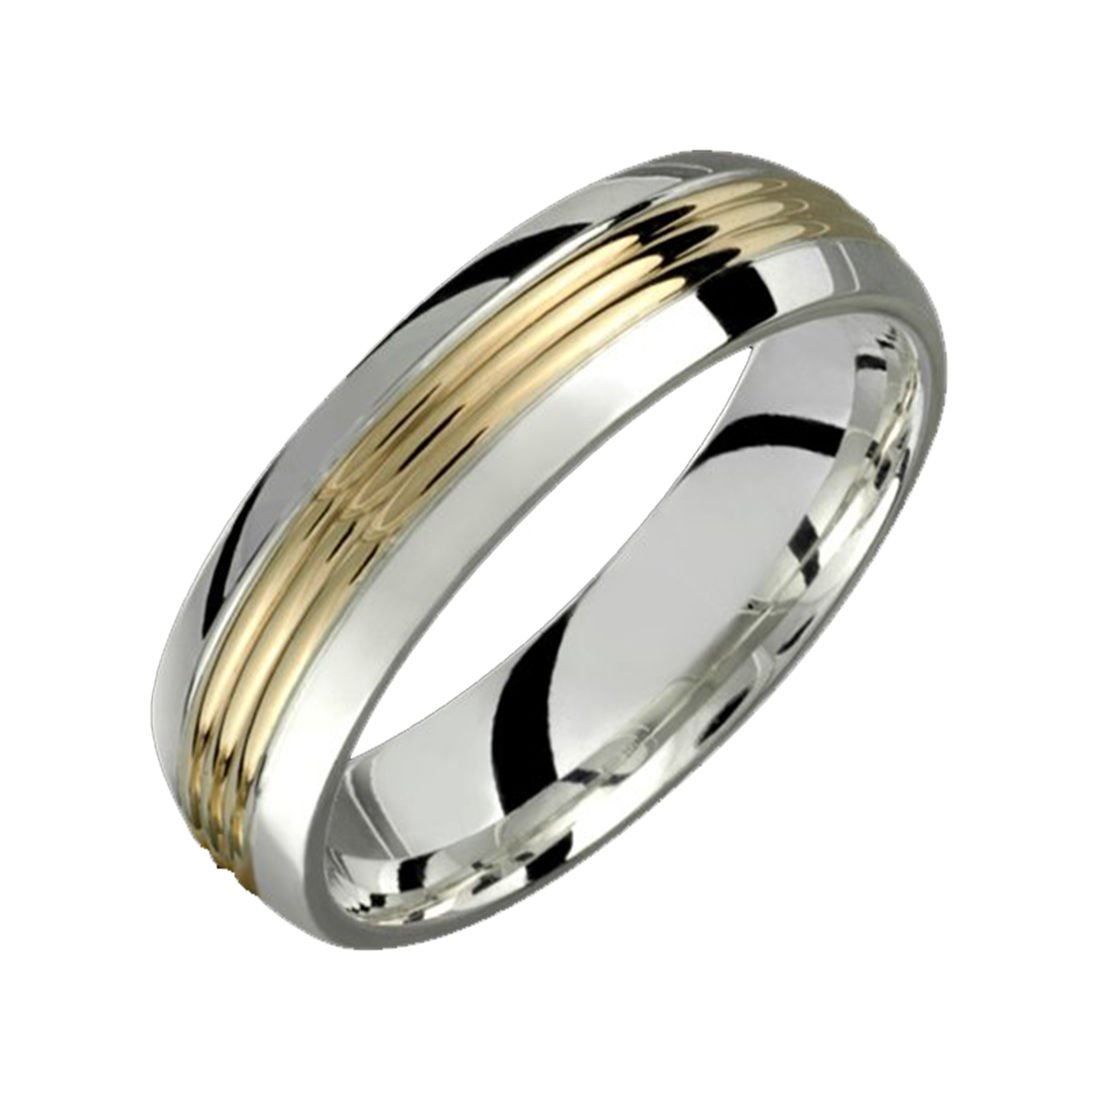 Alain Raphael 6 Millimeters Wide 2 Tone Ring .925 Sterling Silver and 10K Yellow Gold Wedding Band by Alain Raphael